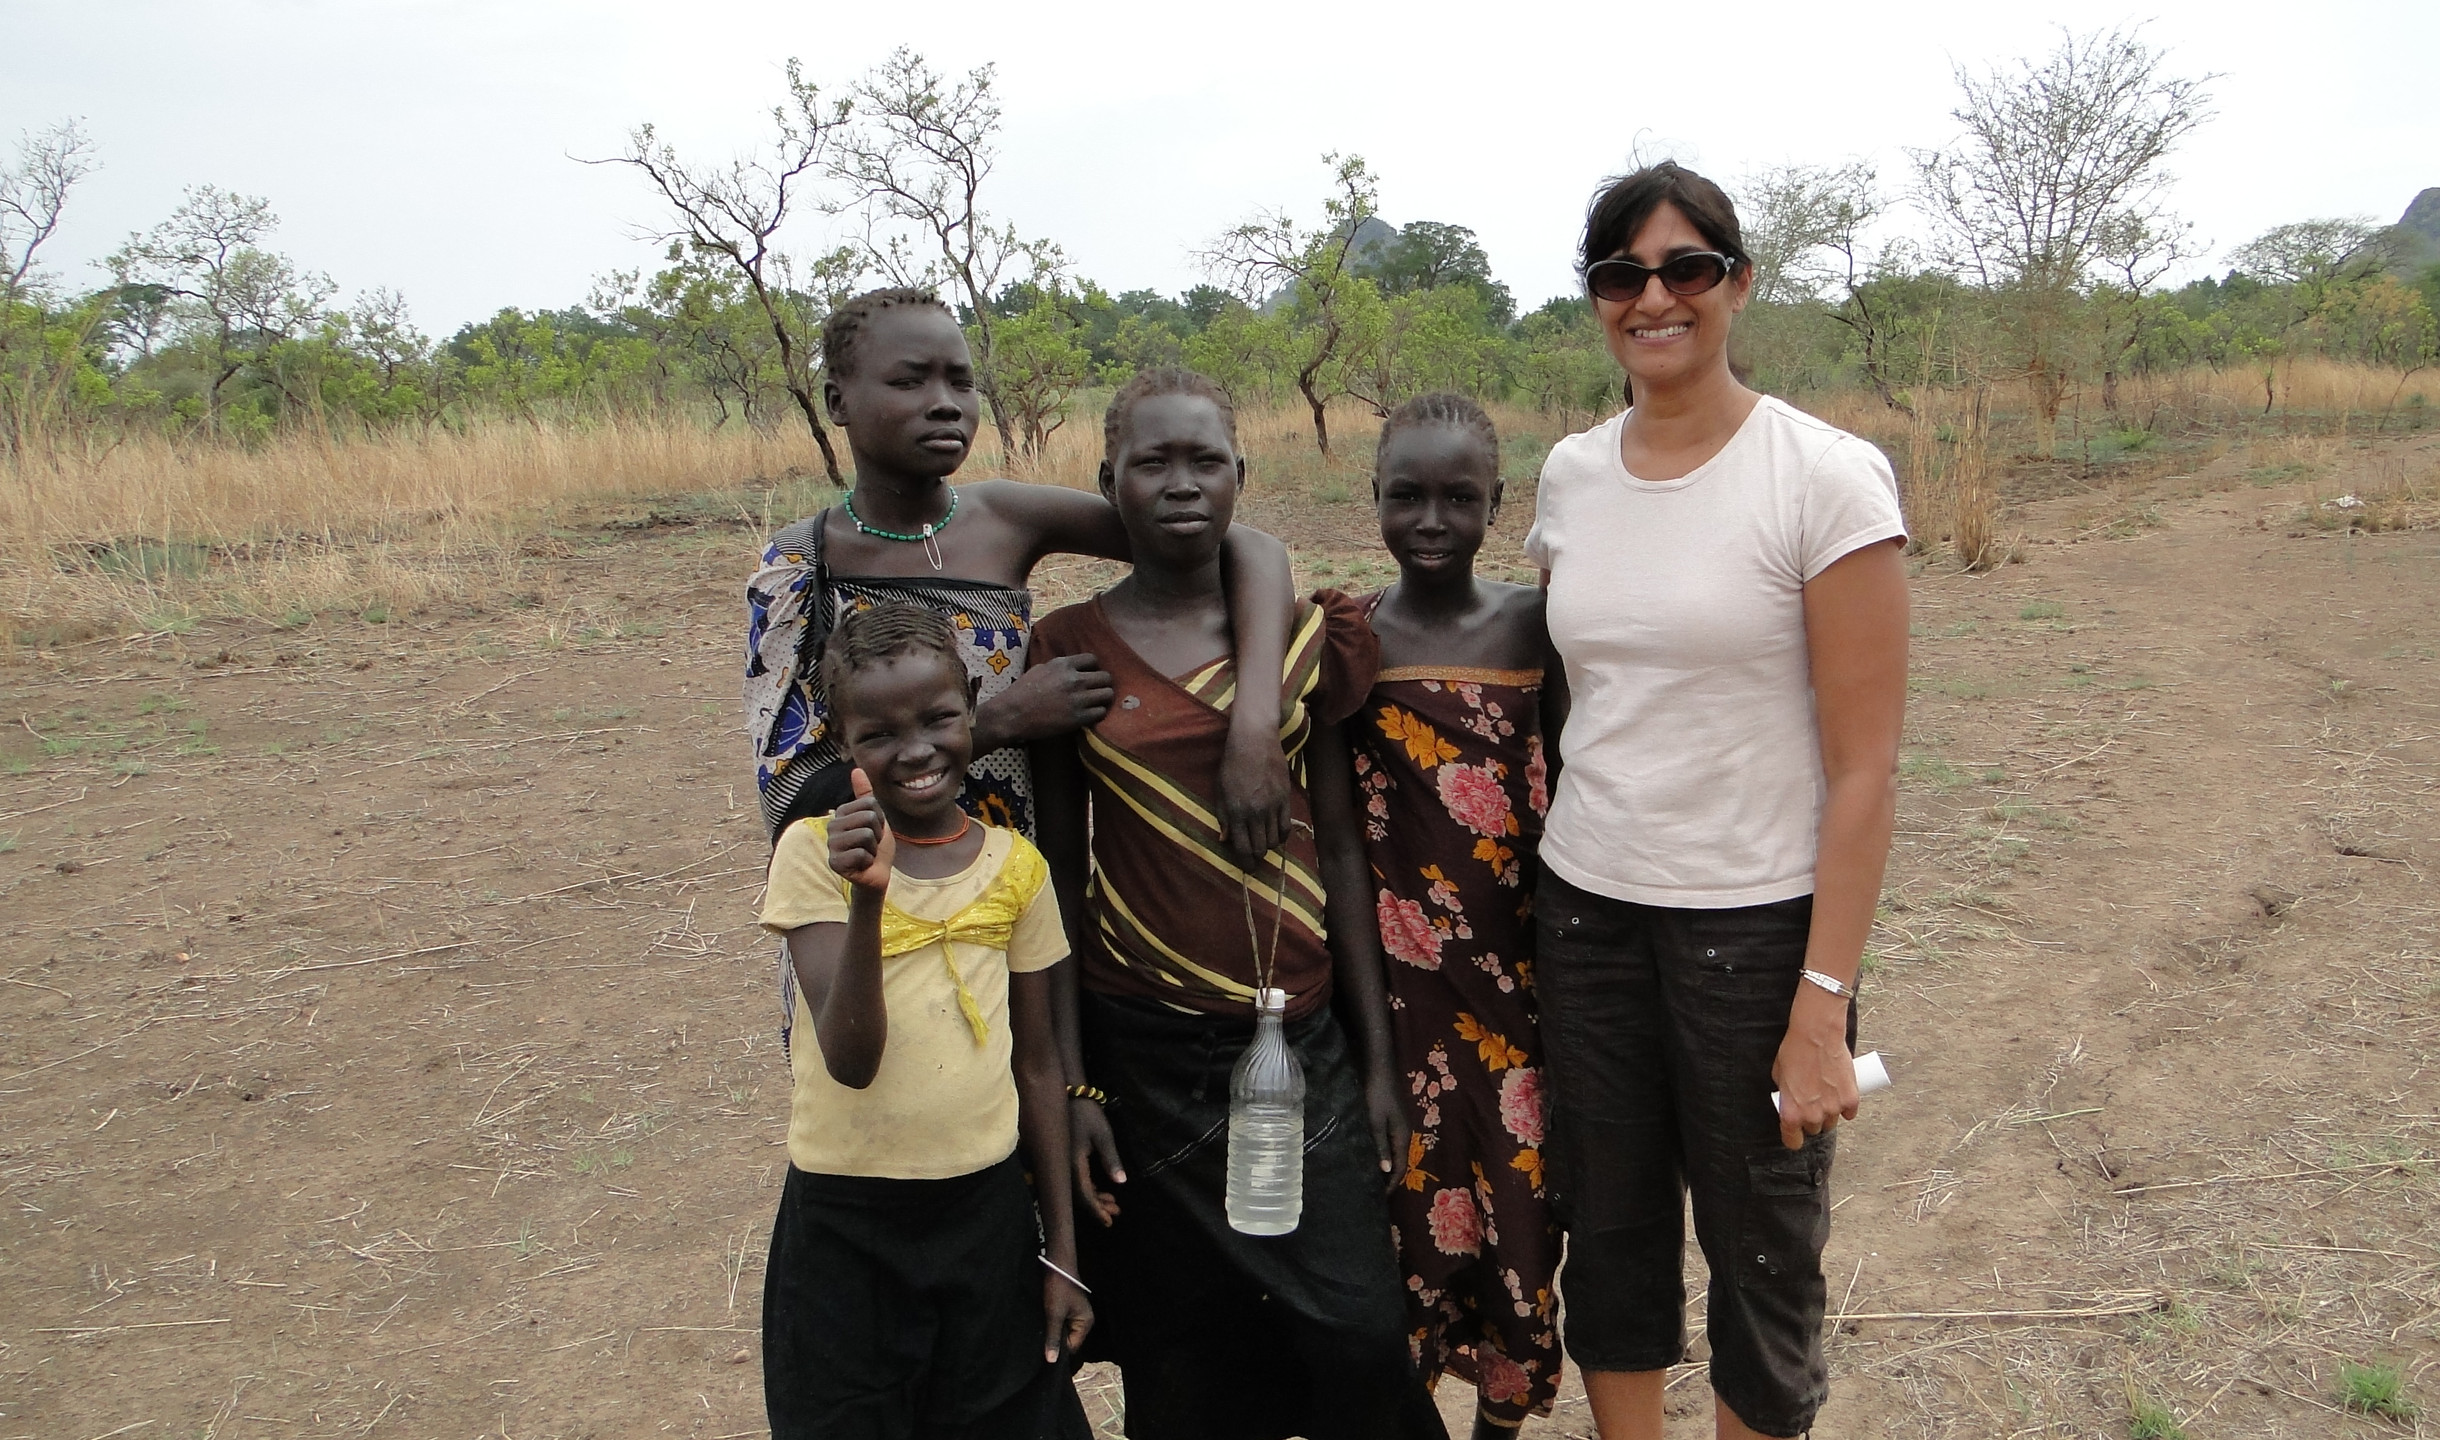 South Sudan coffee research with local villagers